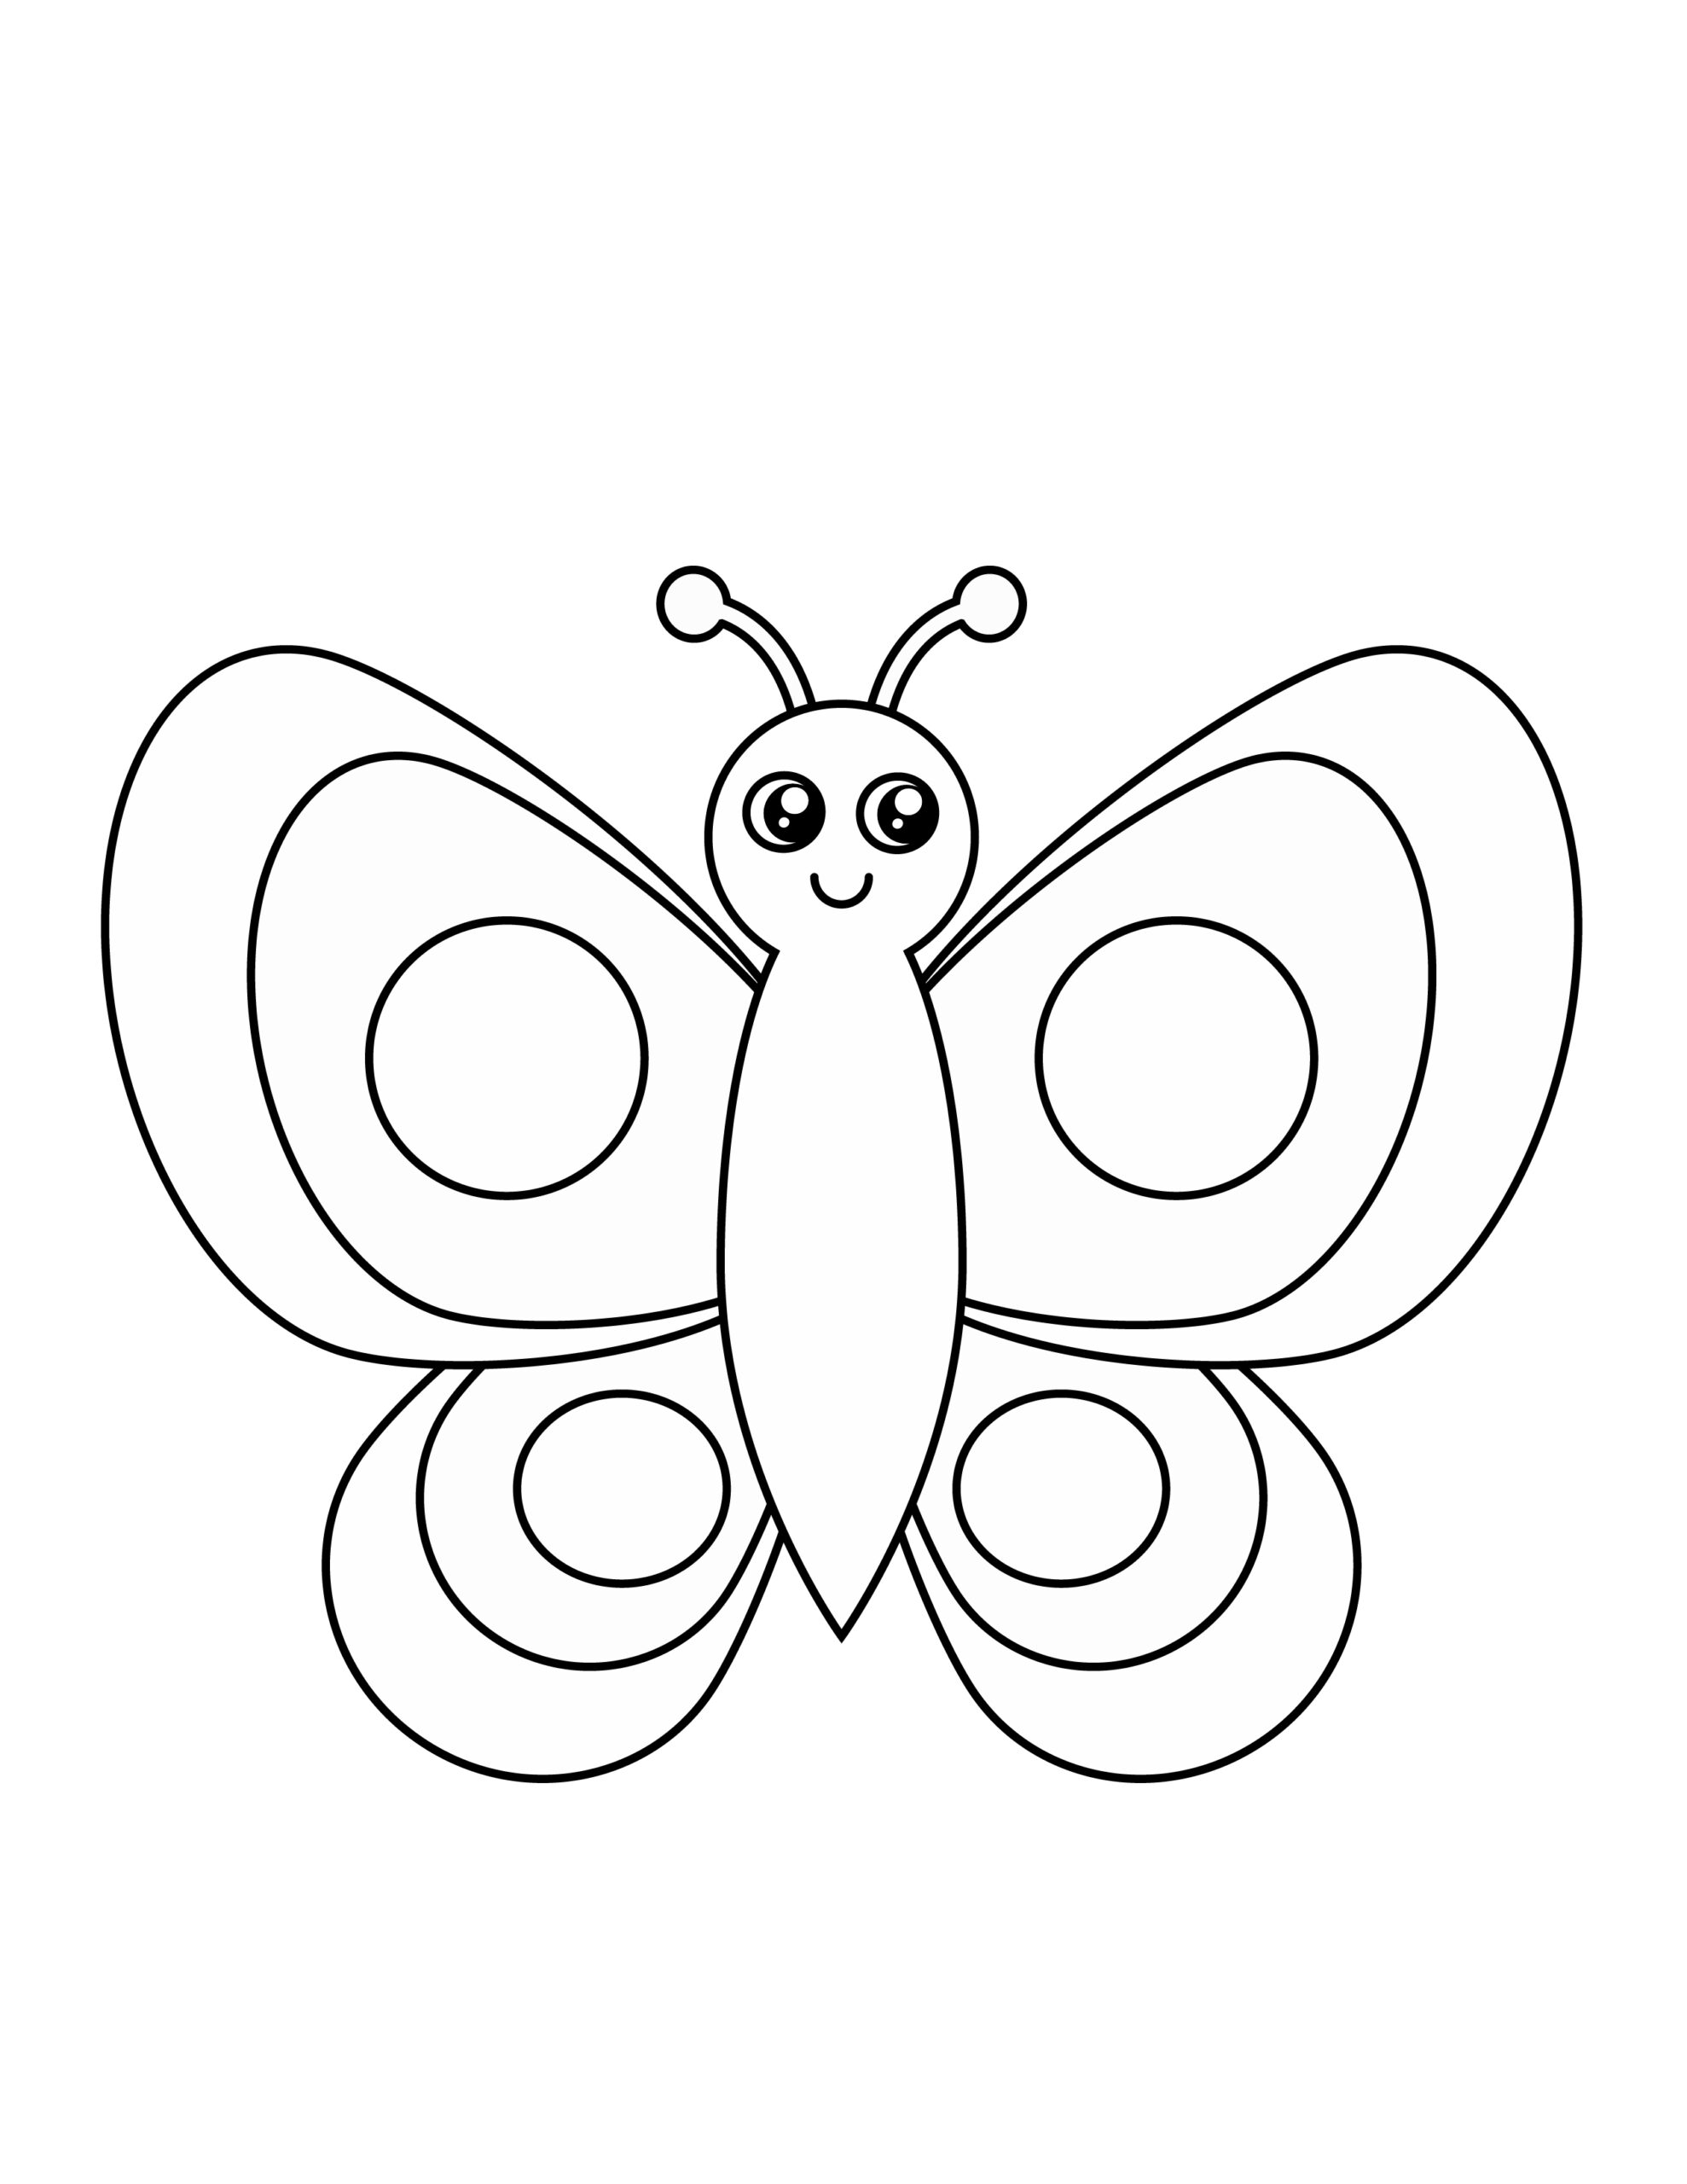 Printable butterfly template for summer template crafts for kids, preschoolers and toddlers